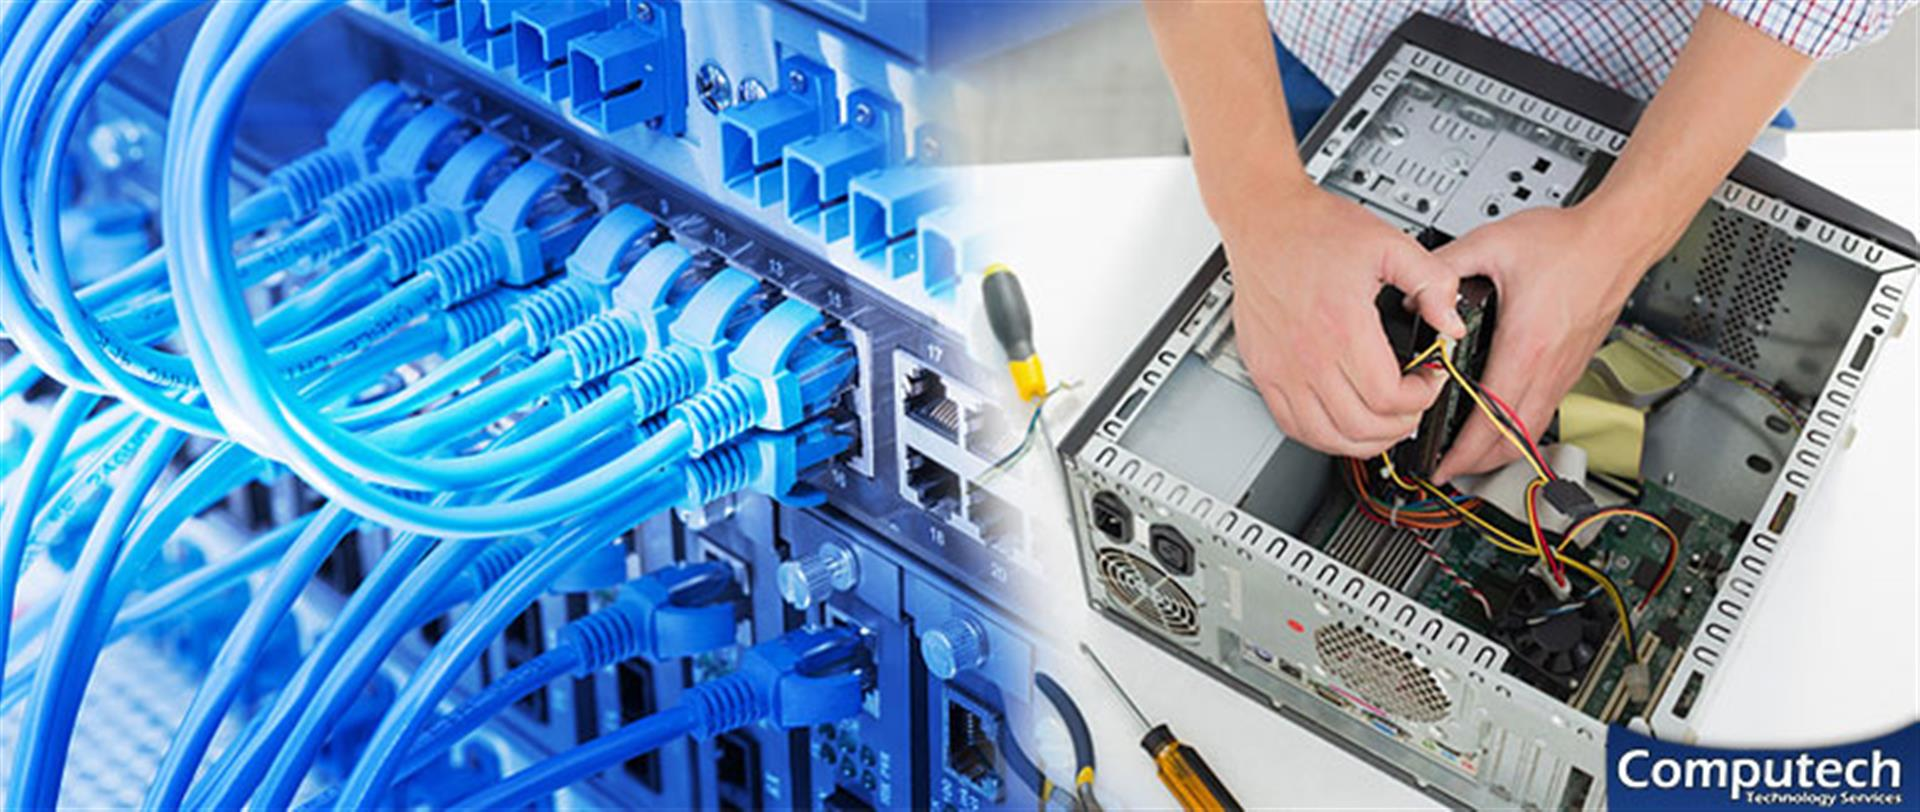 Yuma Arizona On-Site PC & Printer Repairs, Network, Telecom and Data Low Voltage Cabling Services